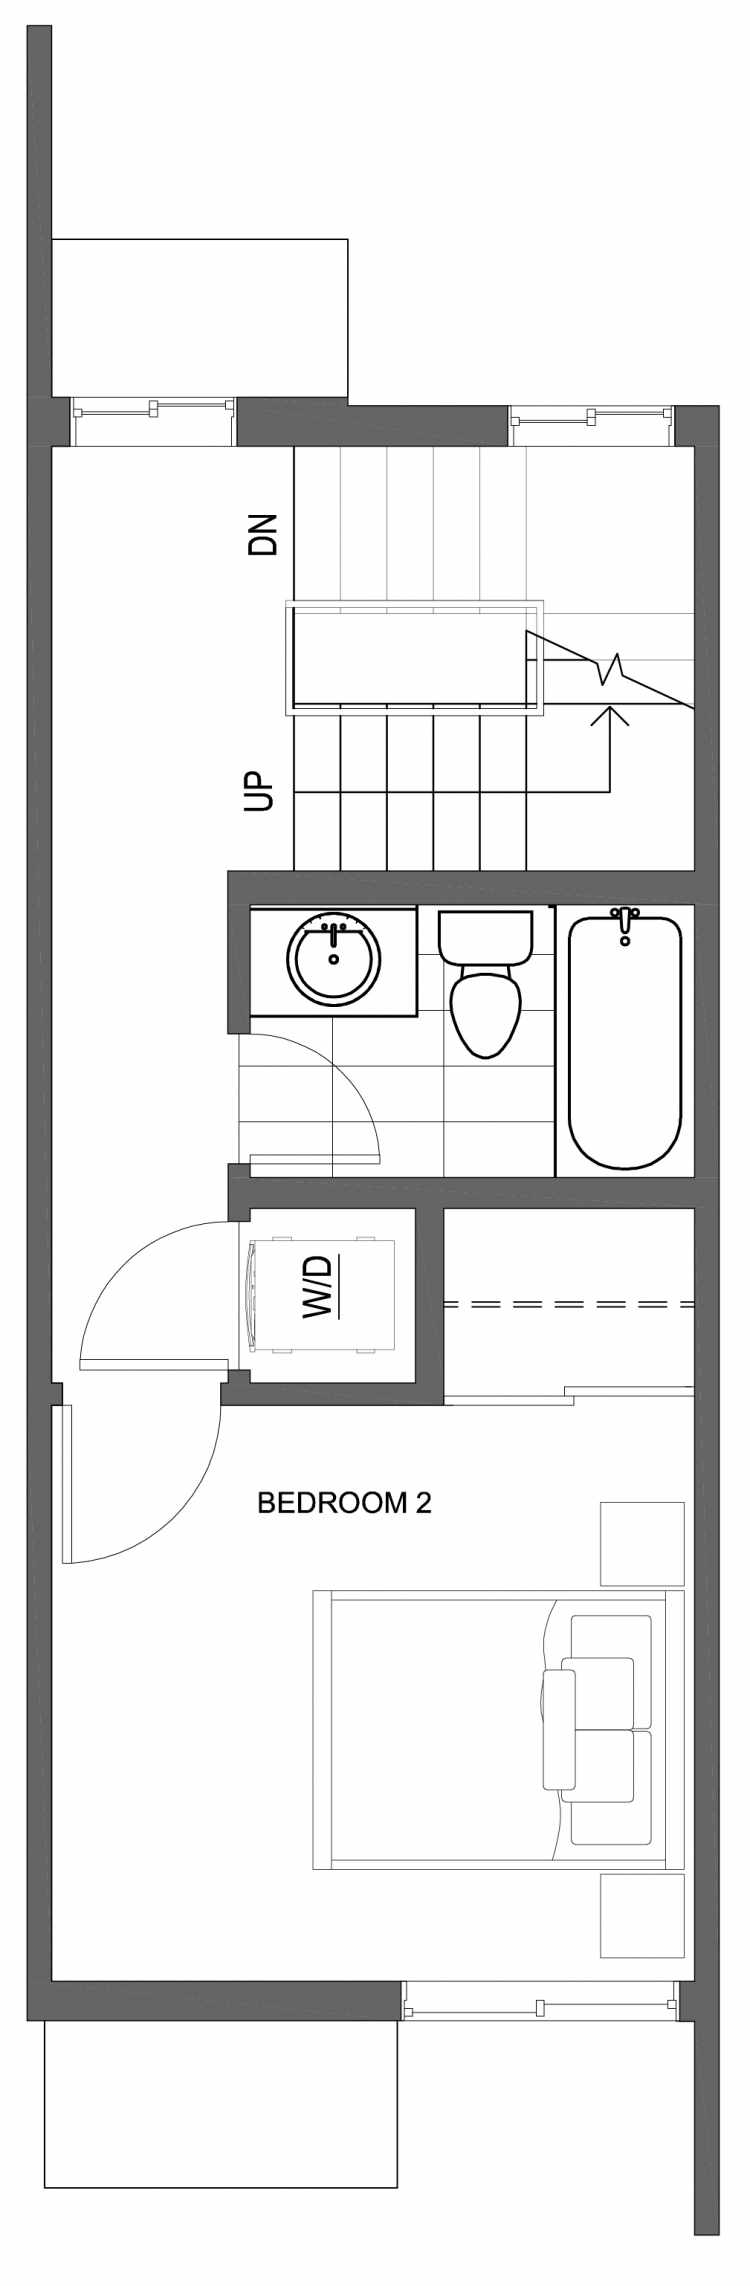 Second Floor Plan of 10425 Alderbrook Pl NW, One of the Zinnia Townhomes in the Greenwood Neighborhood of Seattle